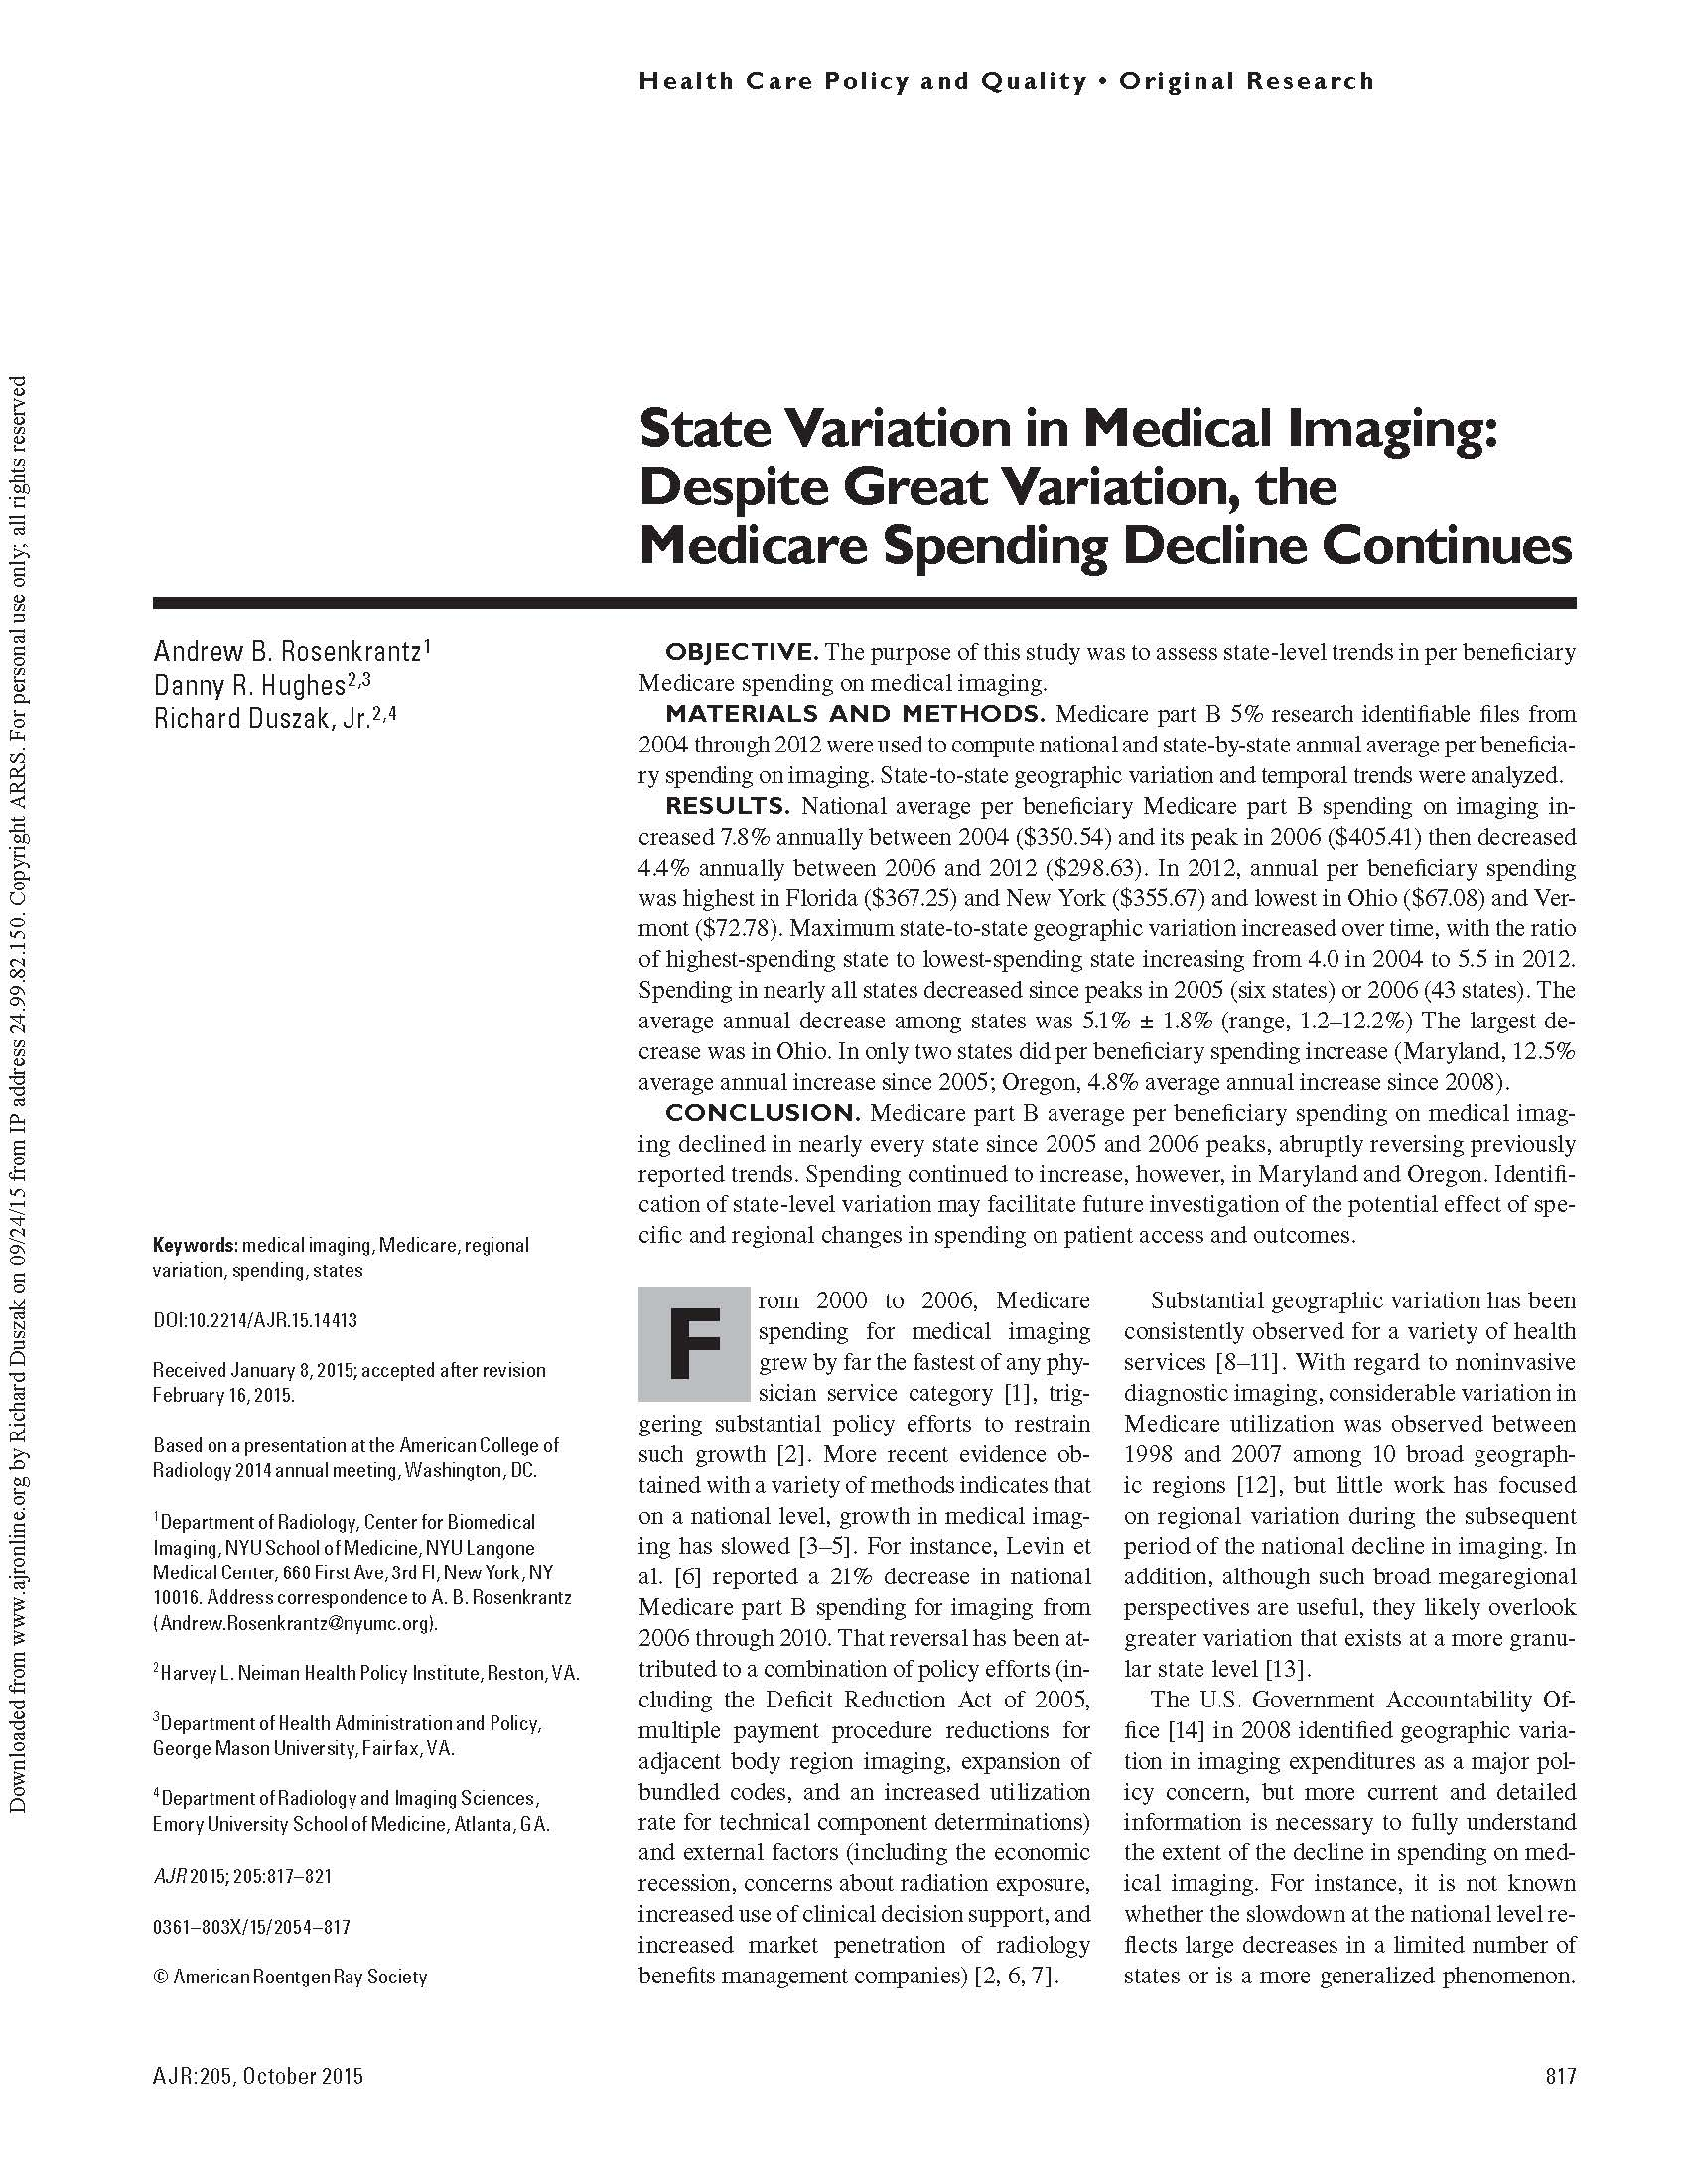 State Variation in Medical Imaging: Despite Great Variation